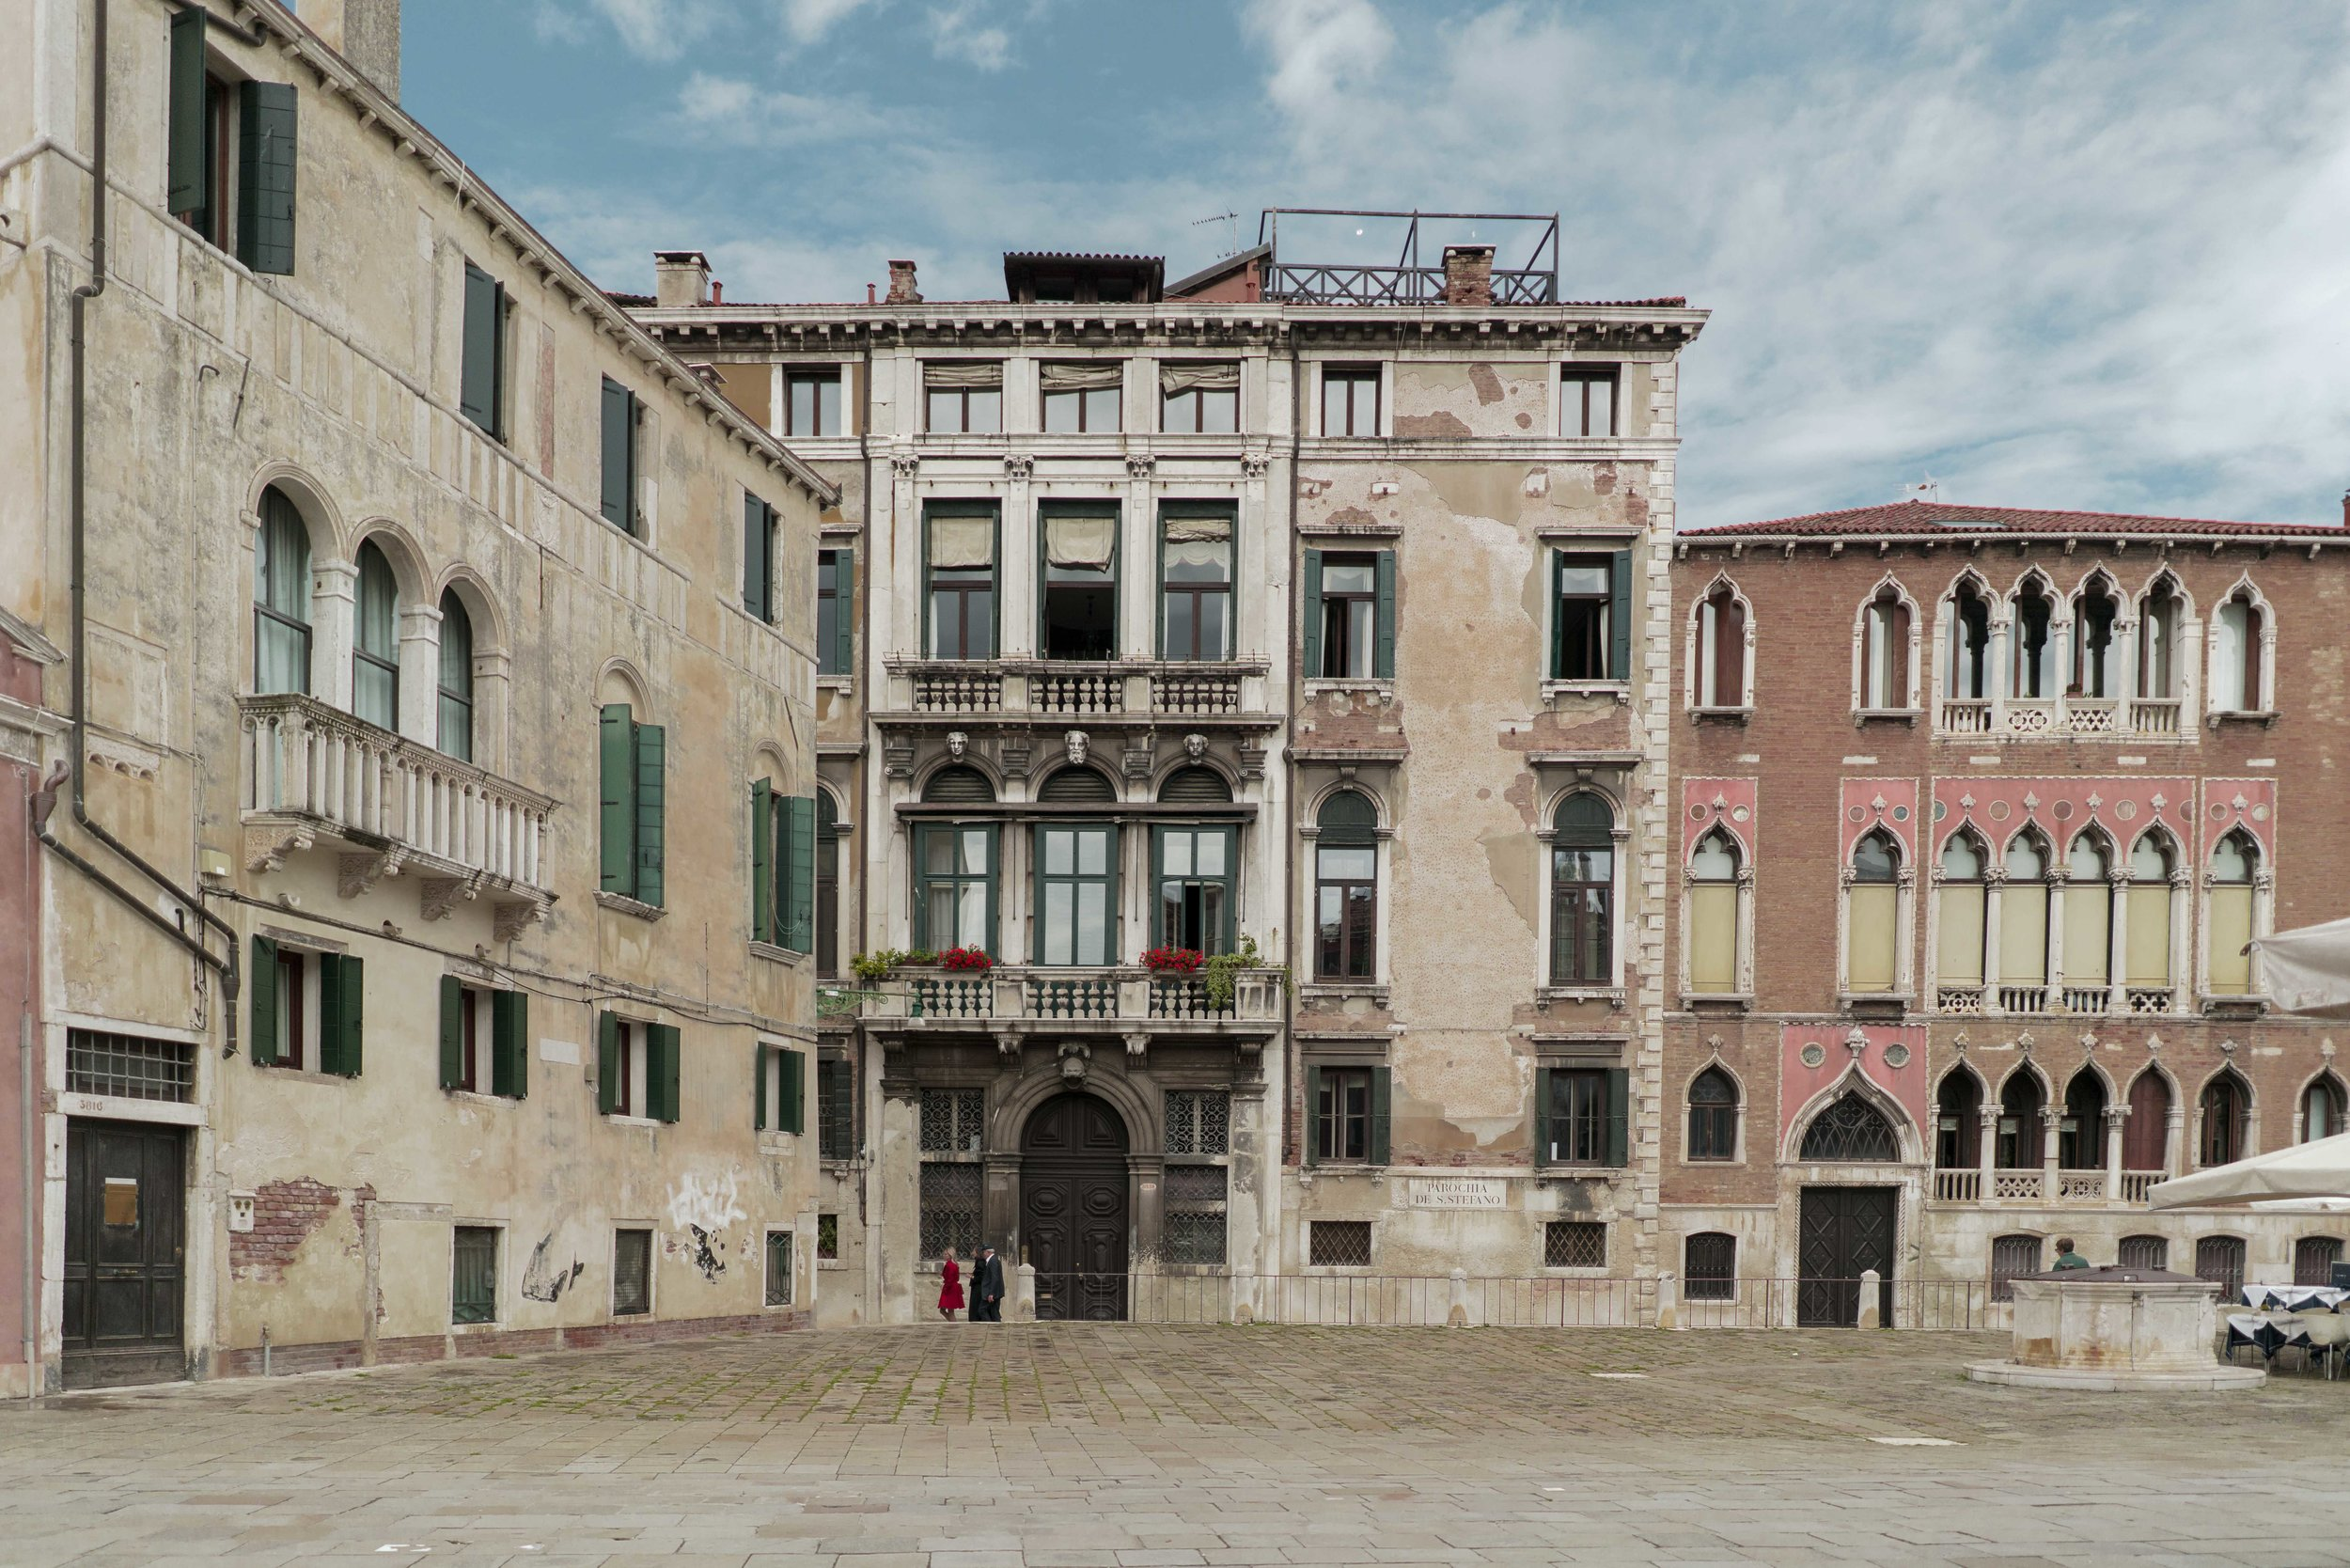 Holiday in Italy - Day 10 Venezia - Sony A7R2 -- 003.jpg